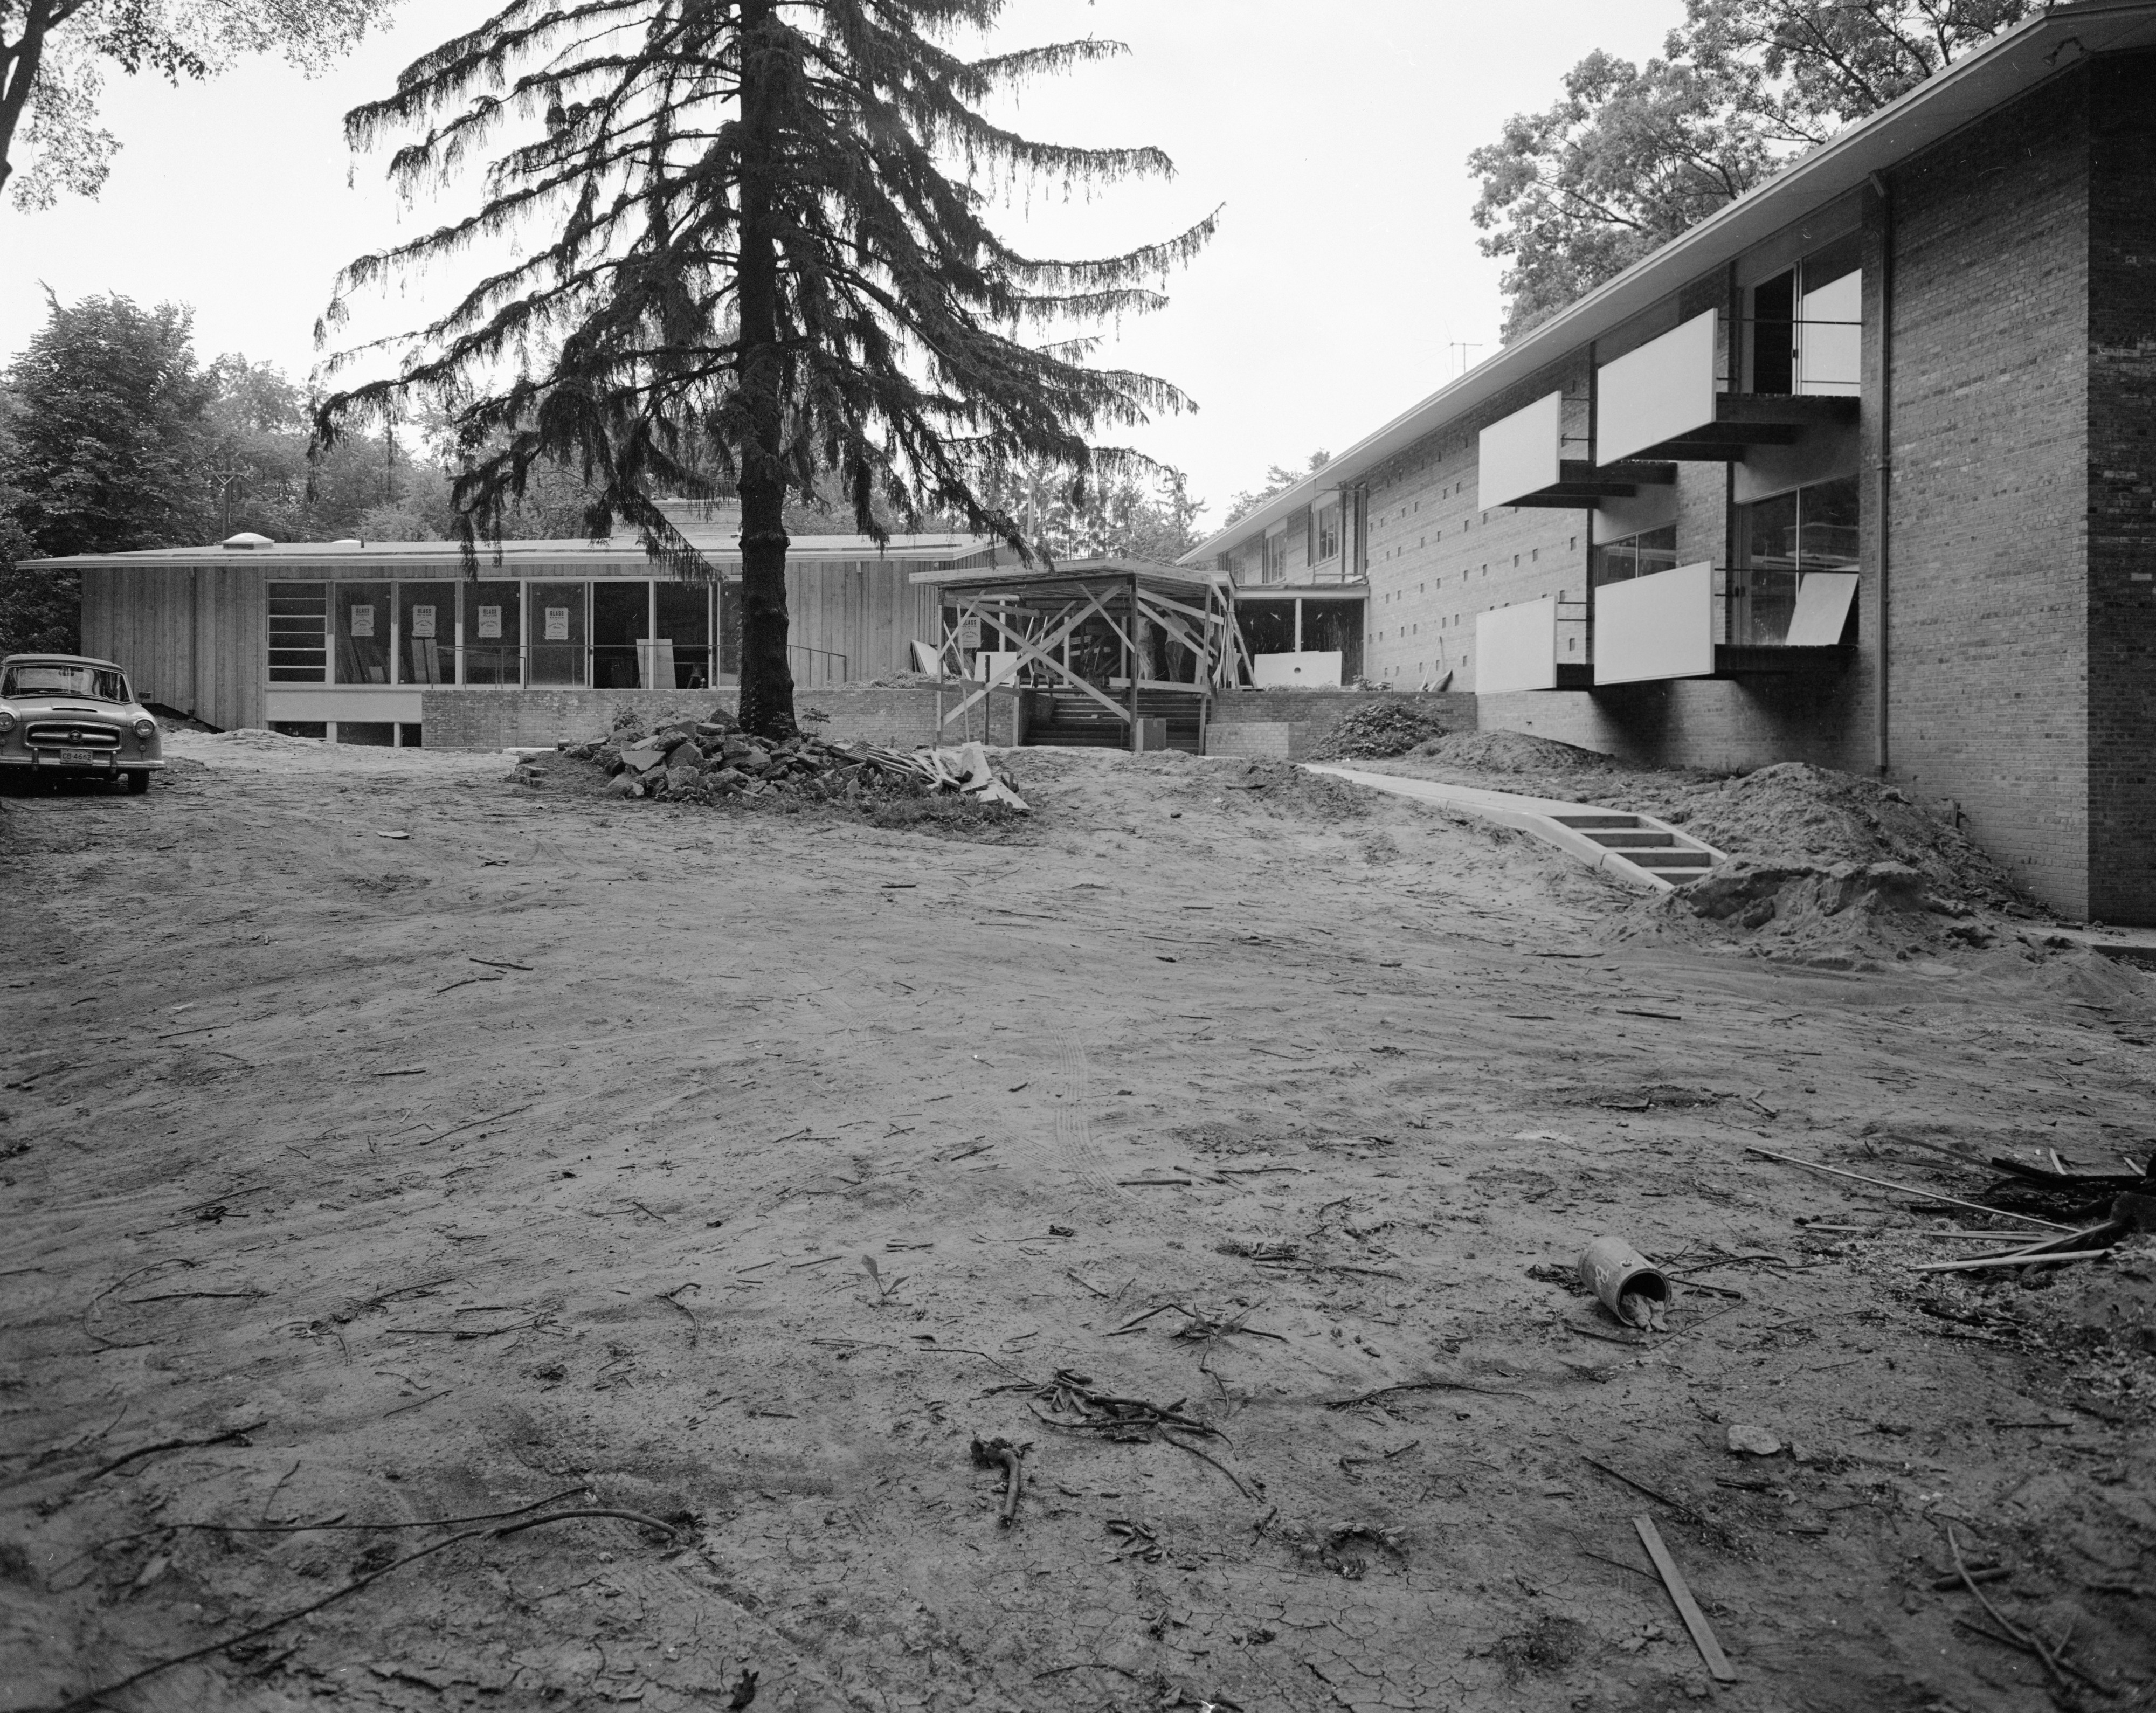 New Delta Gamma Sorority House at 1800 Washtenaw Ave. Nearly Completed, August 1958 image